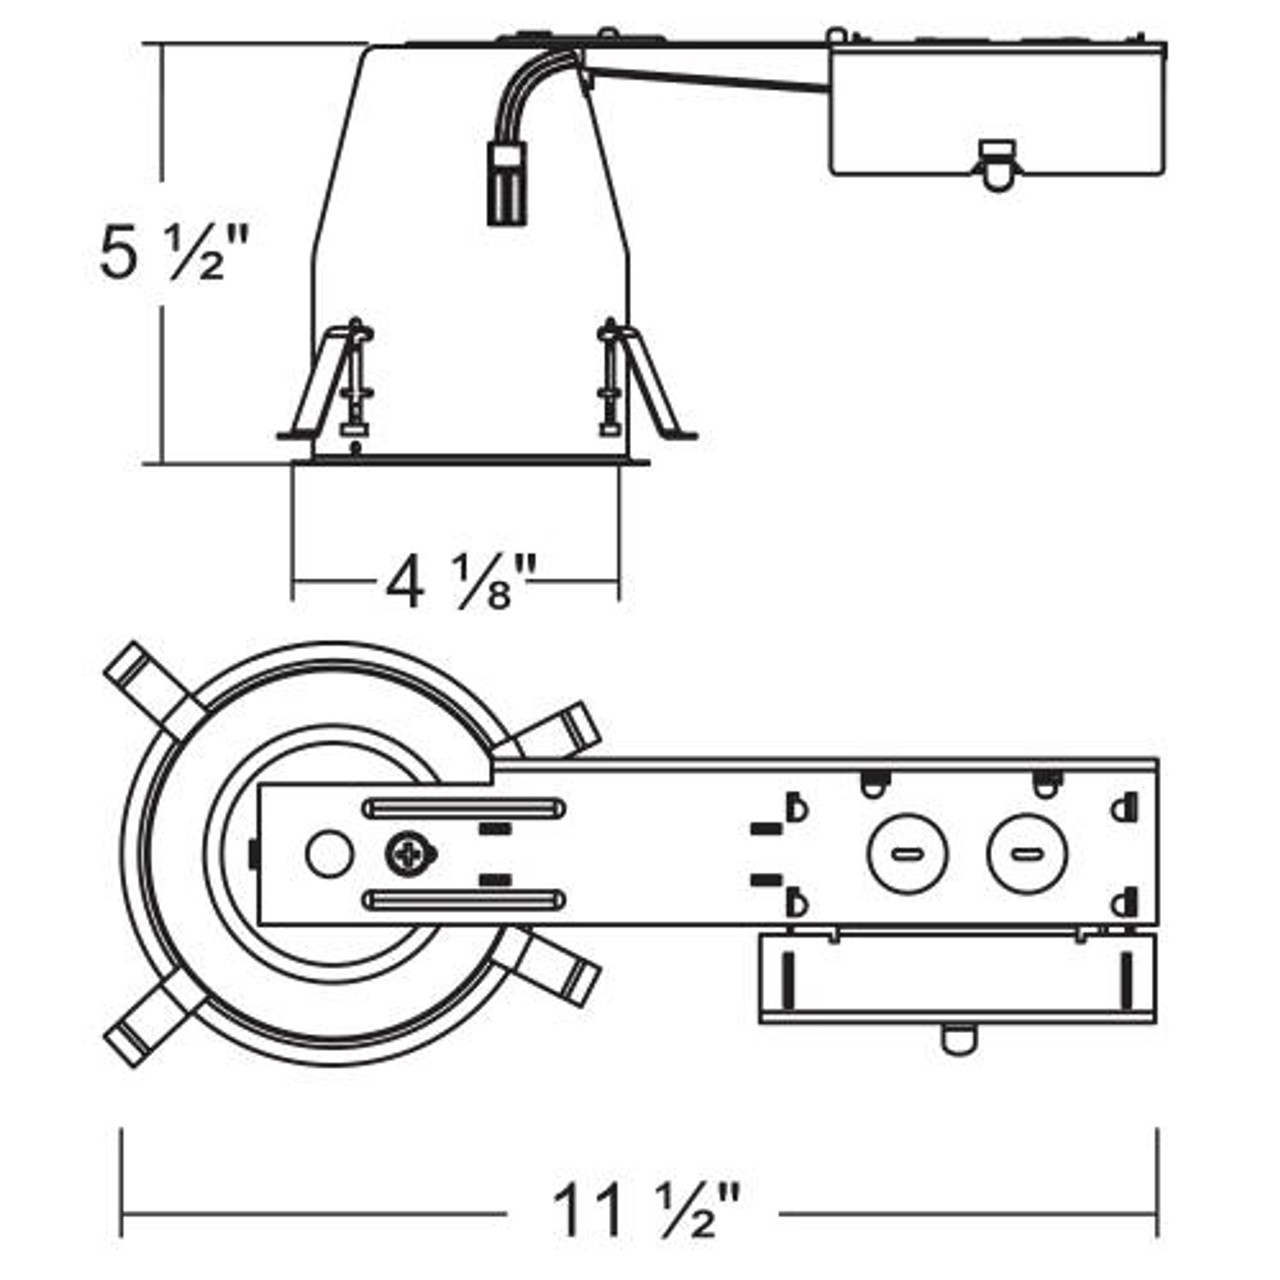 4 in. LED IC Recessed Housing Remodel Can with quick-connect